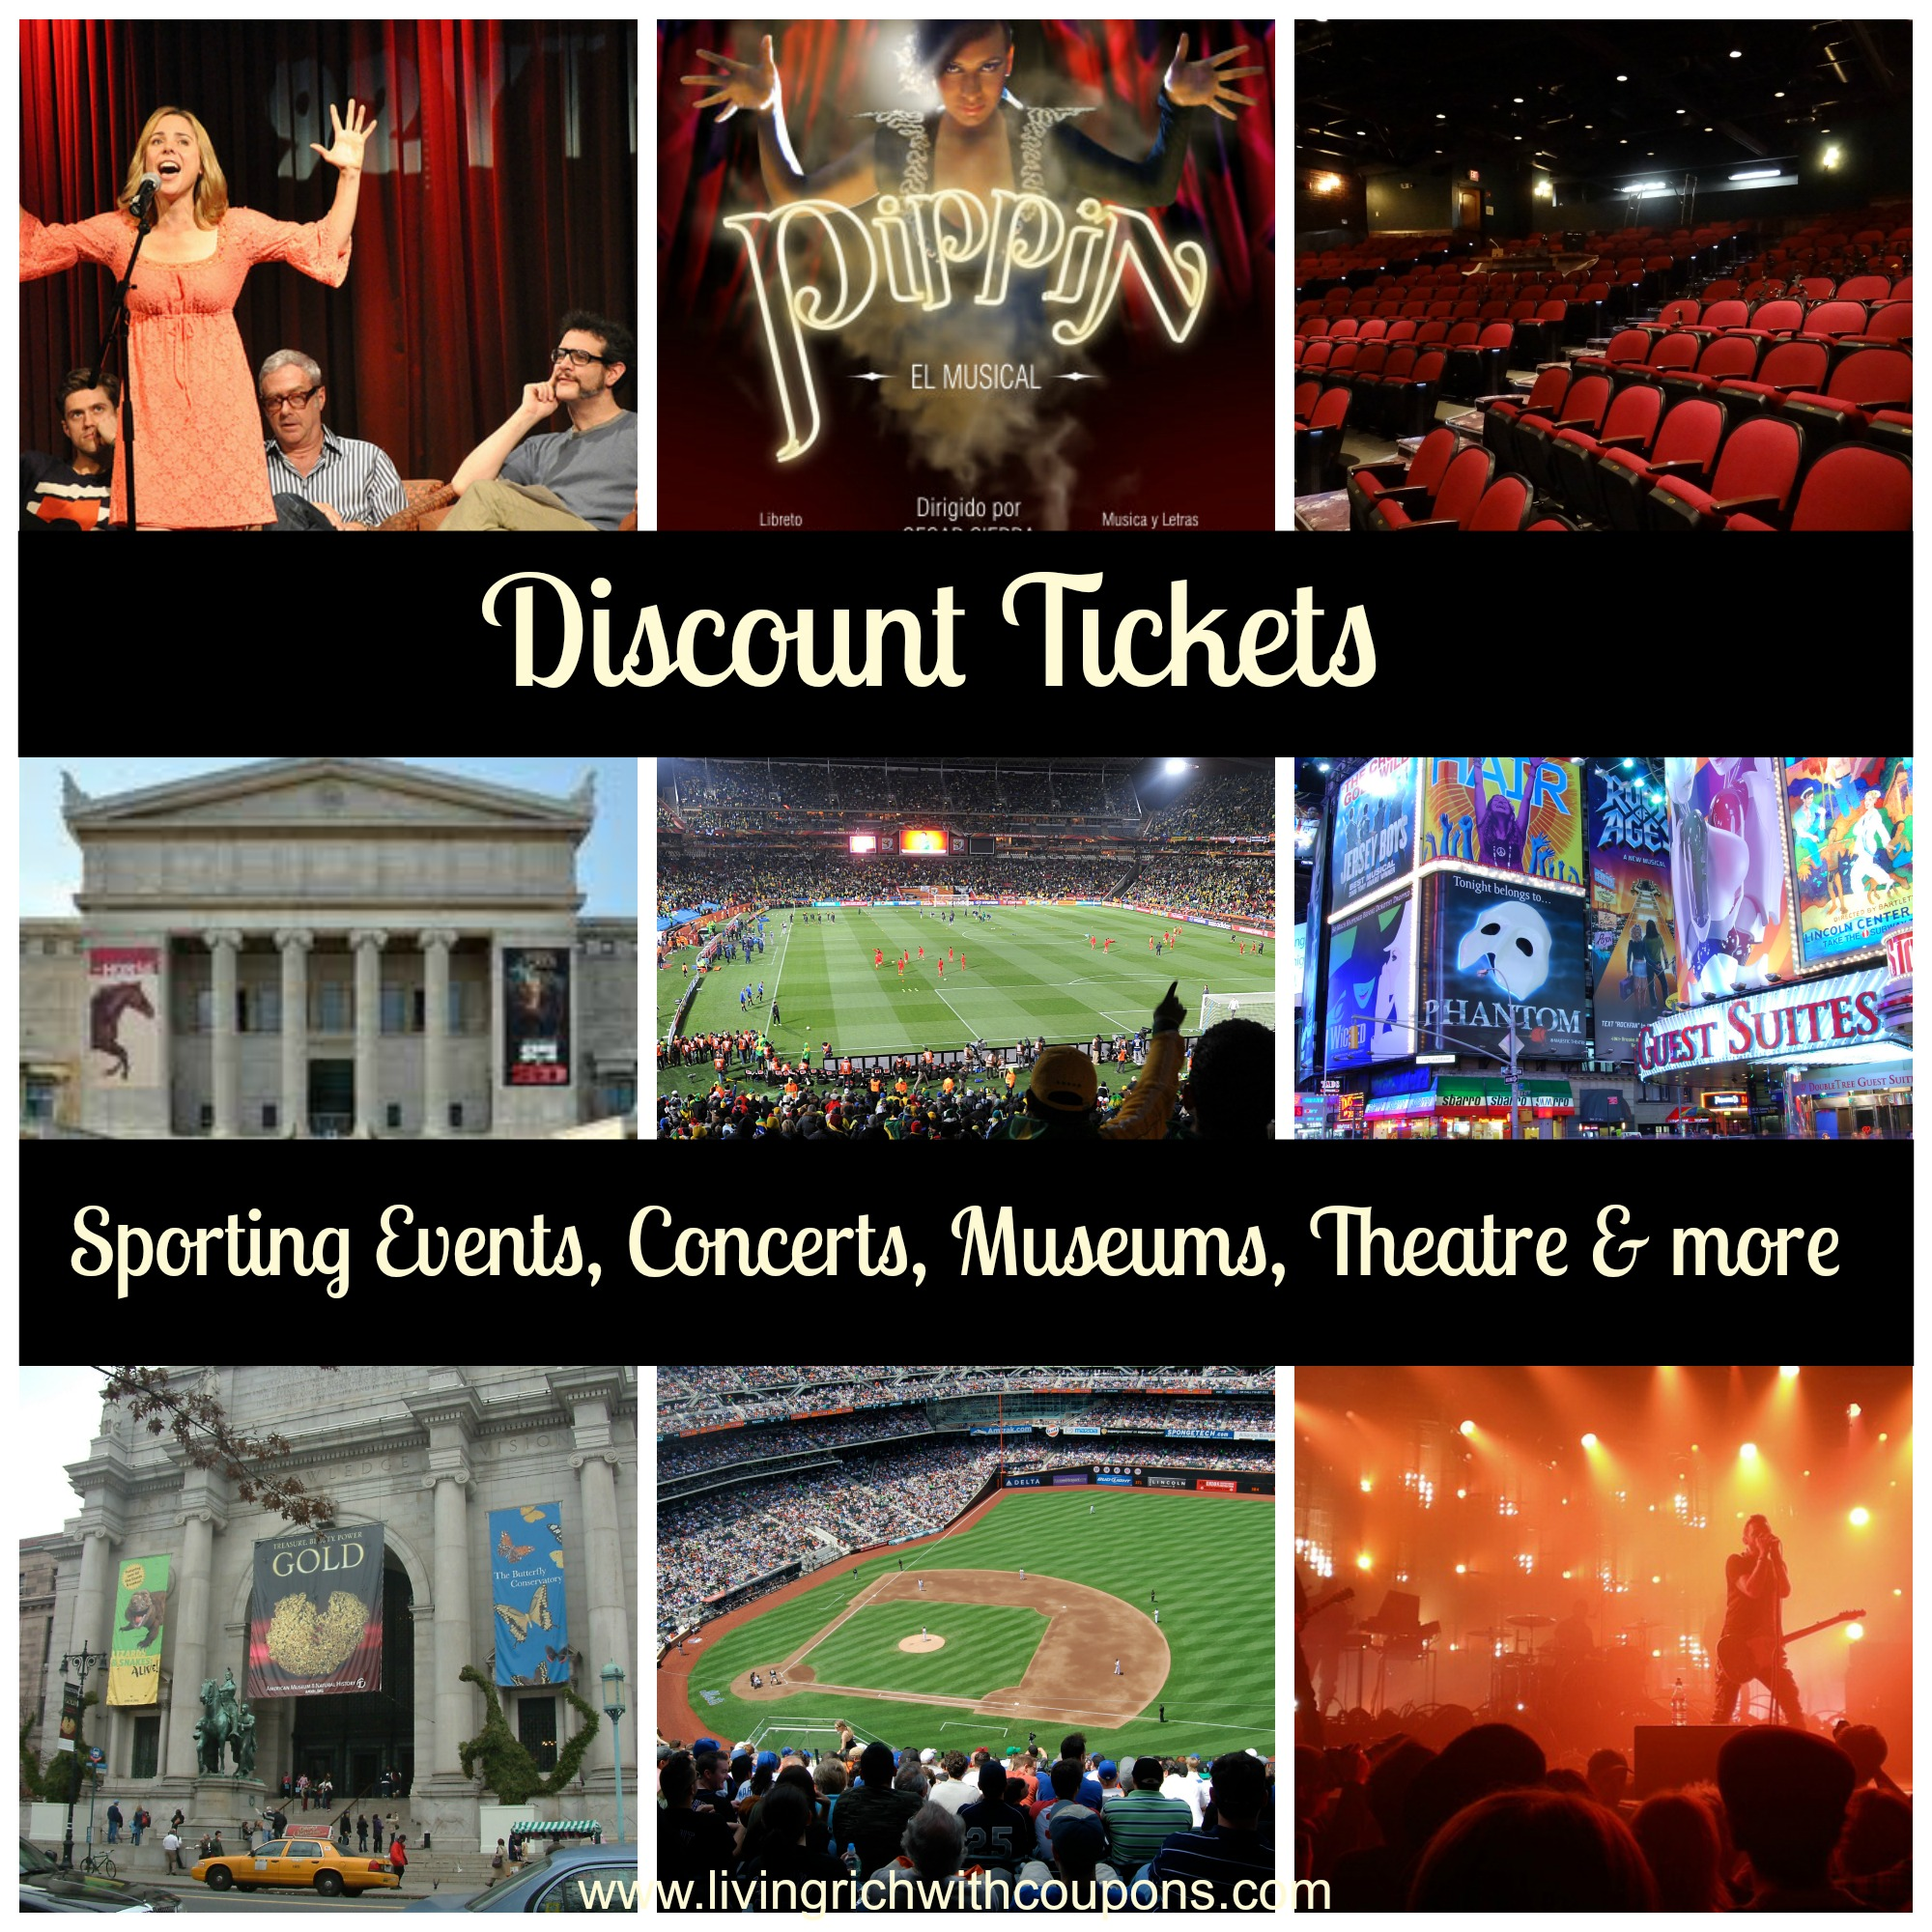 Buy tickets to popular events for low prices grinabelel.tk: Concert Tickets, Sports Tickets, Theatre Tickets.